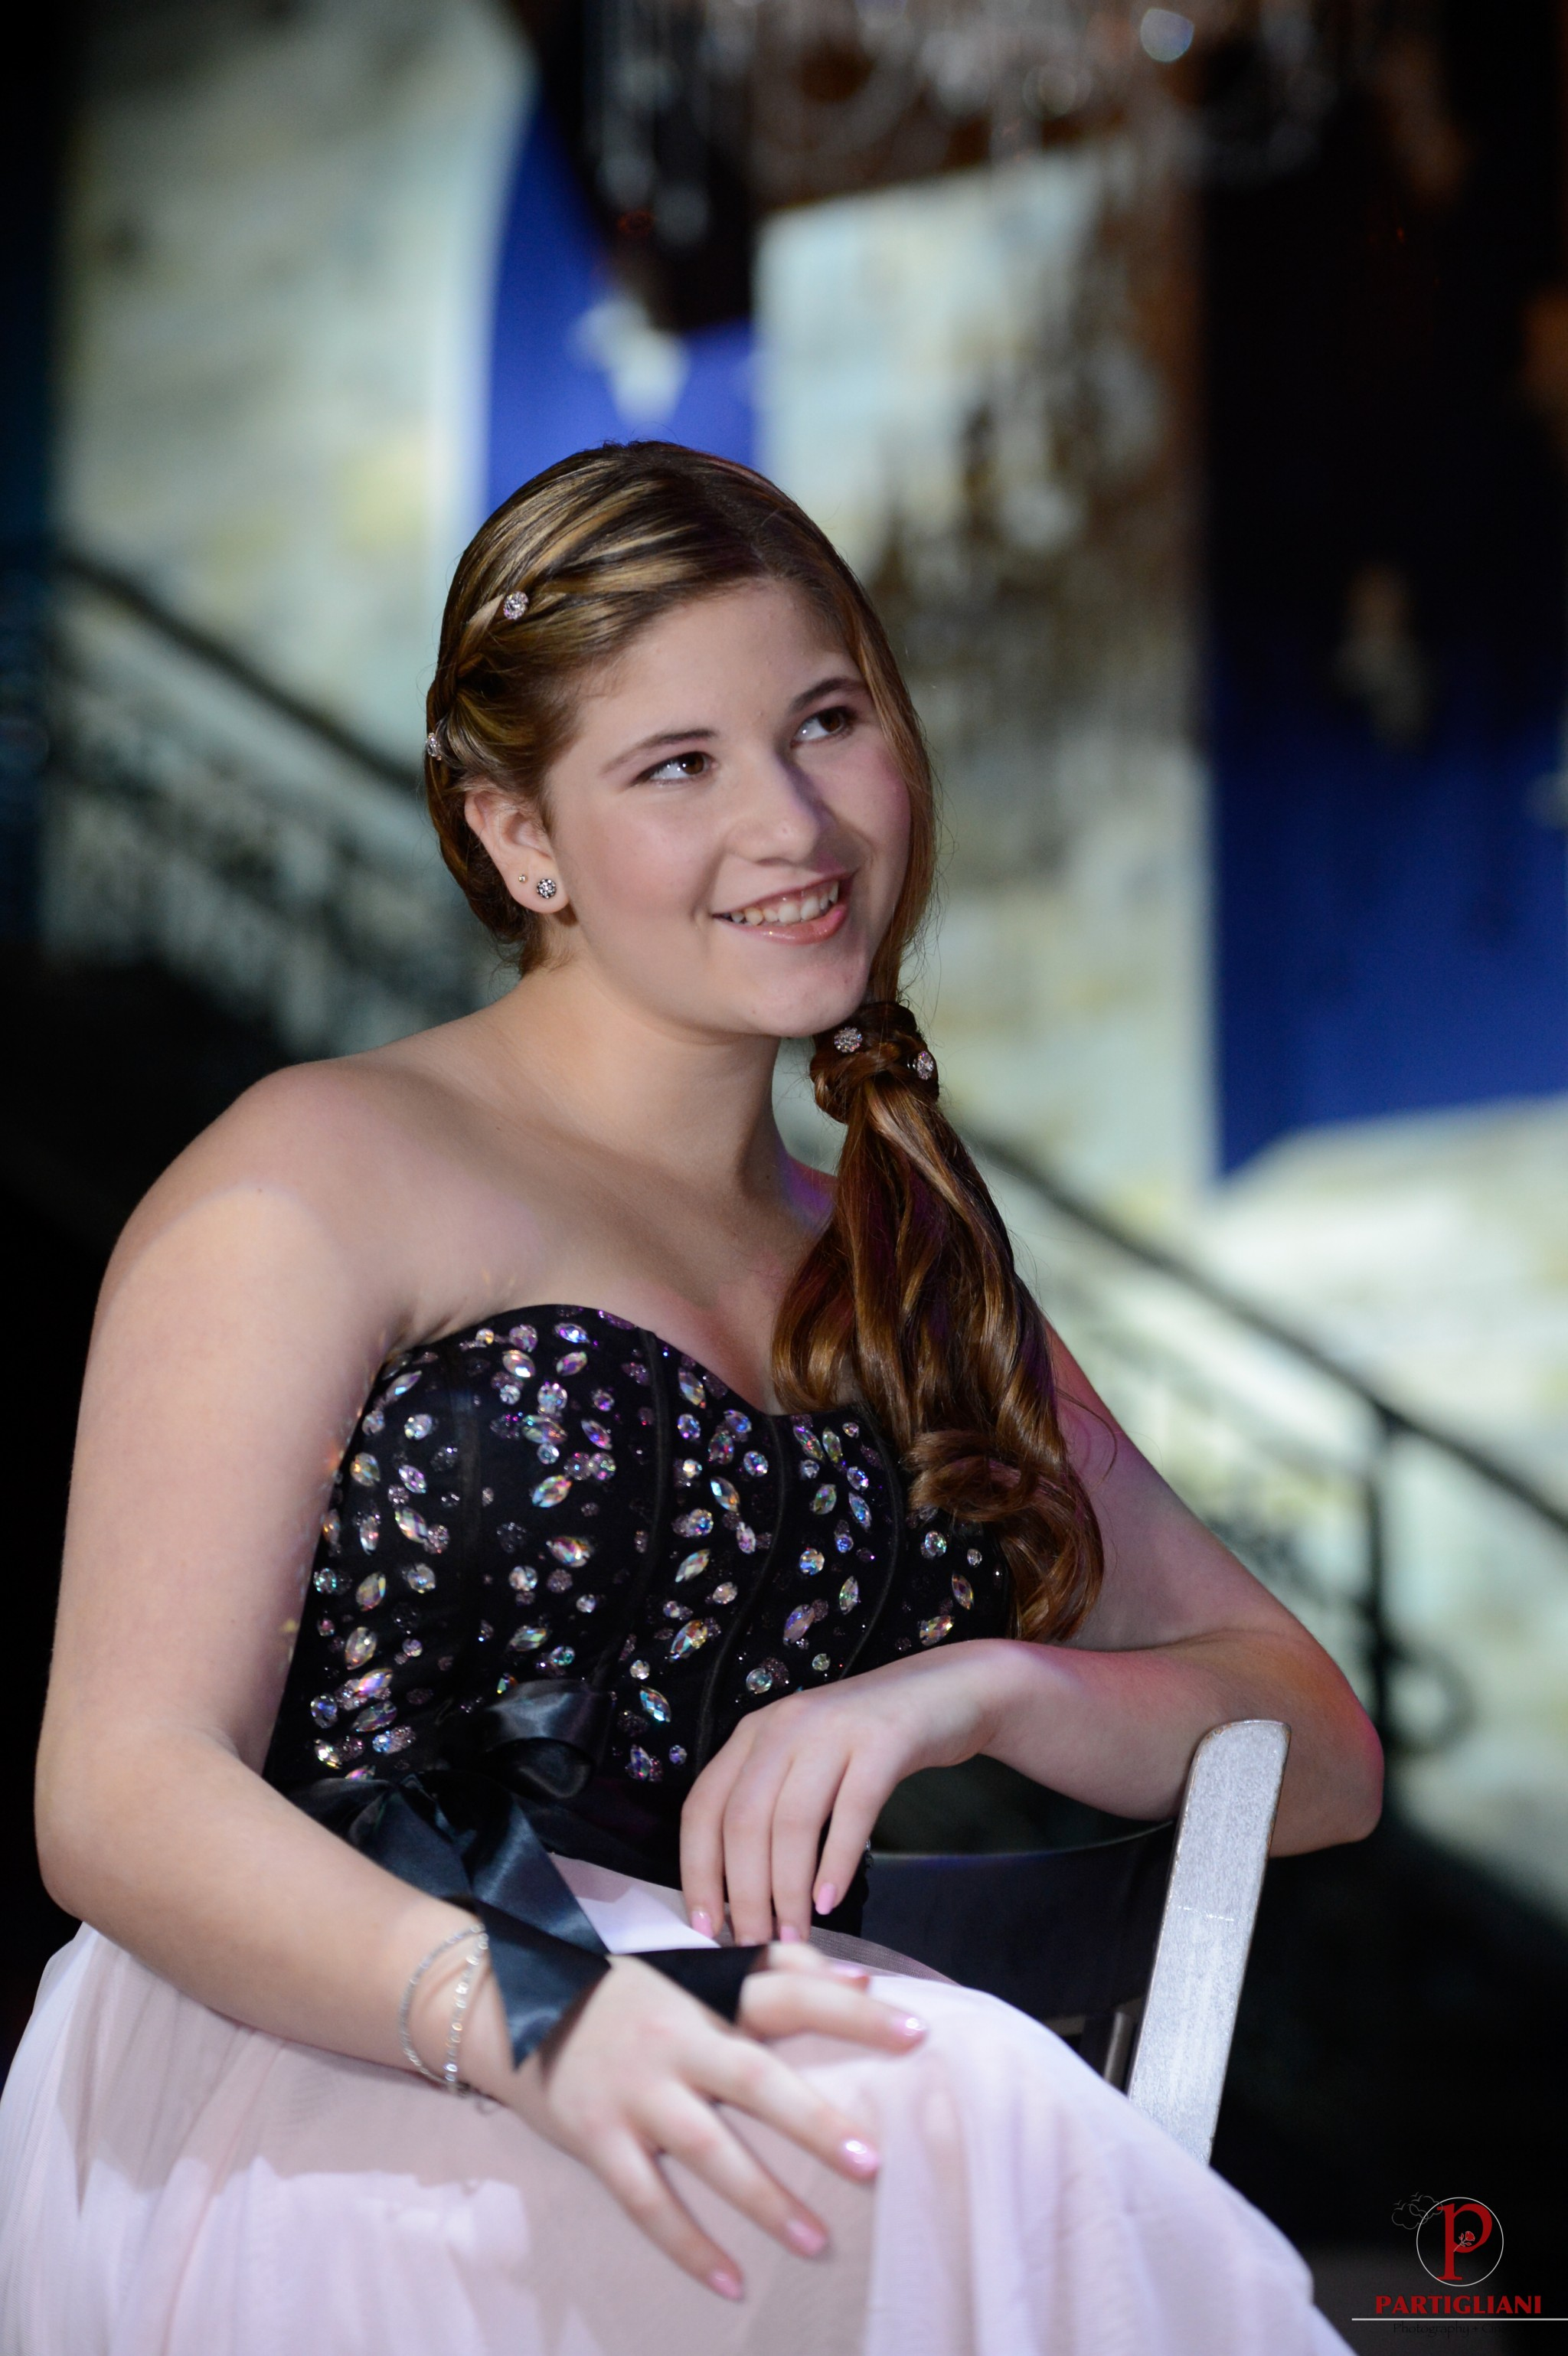 JENNA'S BAT MITZVAH, TEMPLE B'NAI AVIV – WESTON, THE VENUE FT LAUDERDALE, GALAXY ENTERTAINENT, RICK JOSEPH PHOTOMINGLE